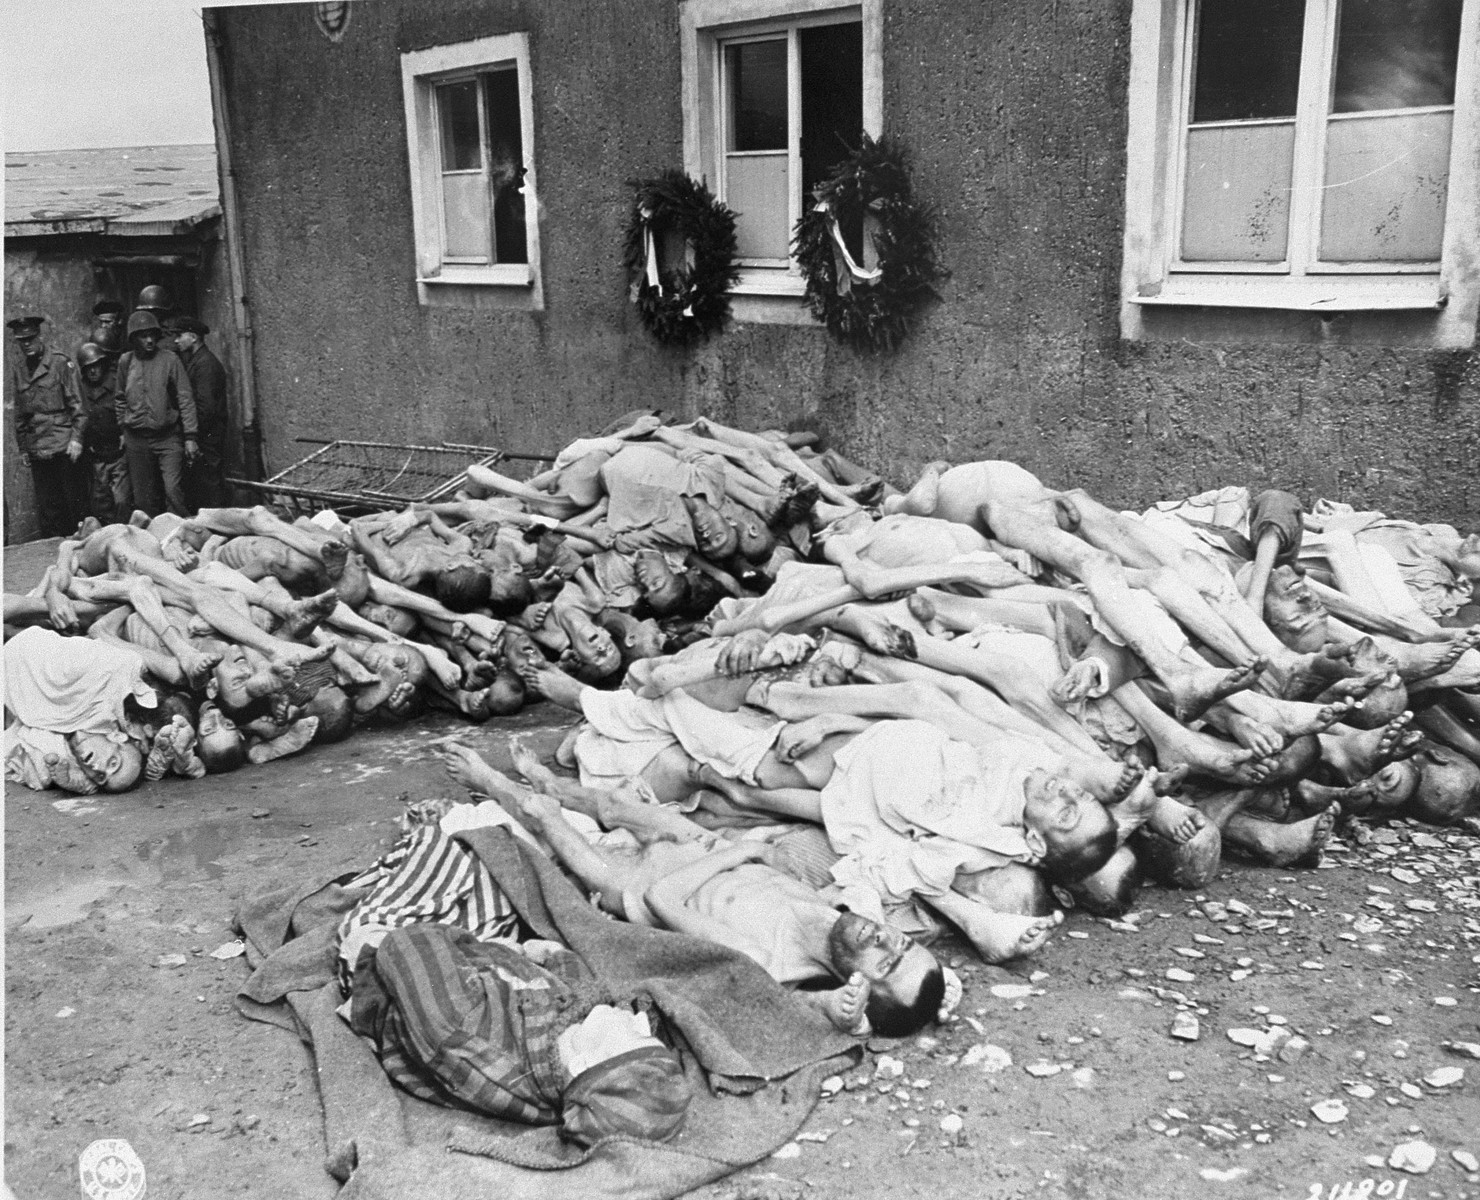 The bodies of former prisoners are stacked outside the crematorium in the newly liberated Buchenwald concentration camp.